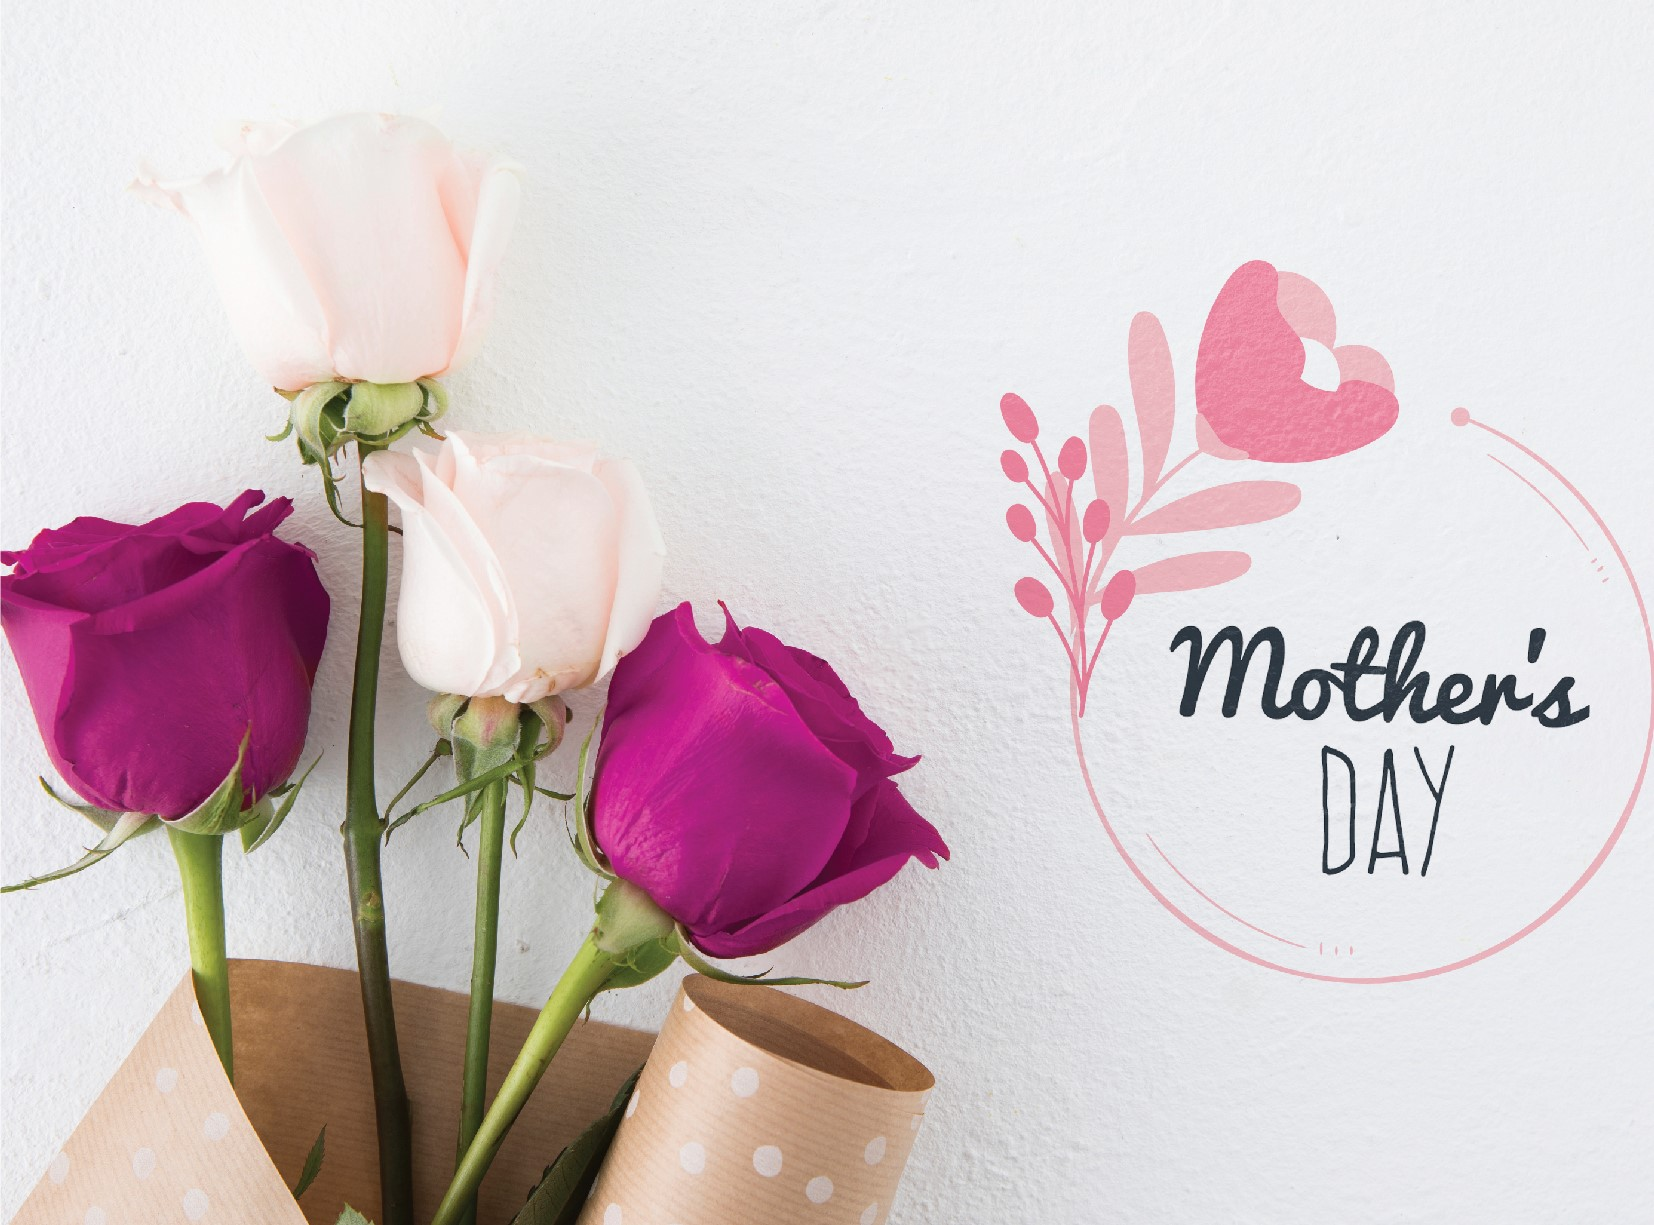 mother's day restaurant promotion ideas